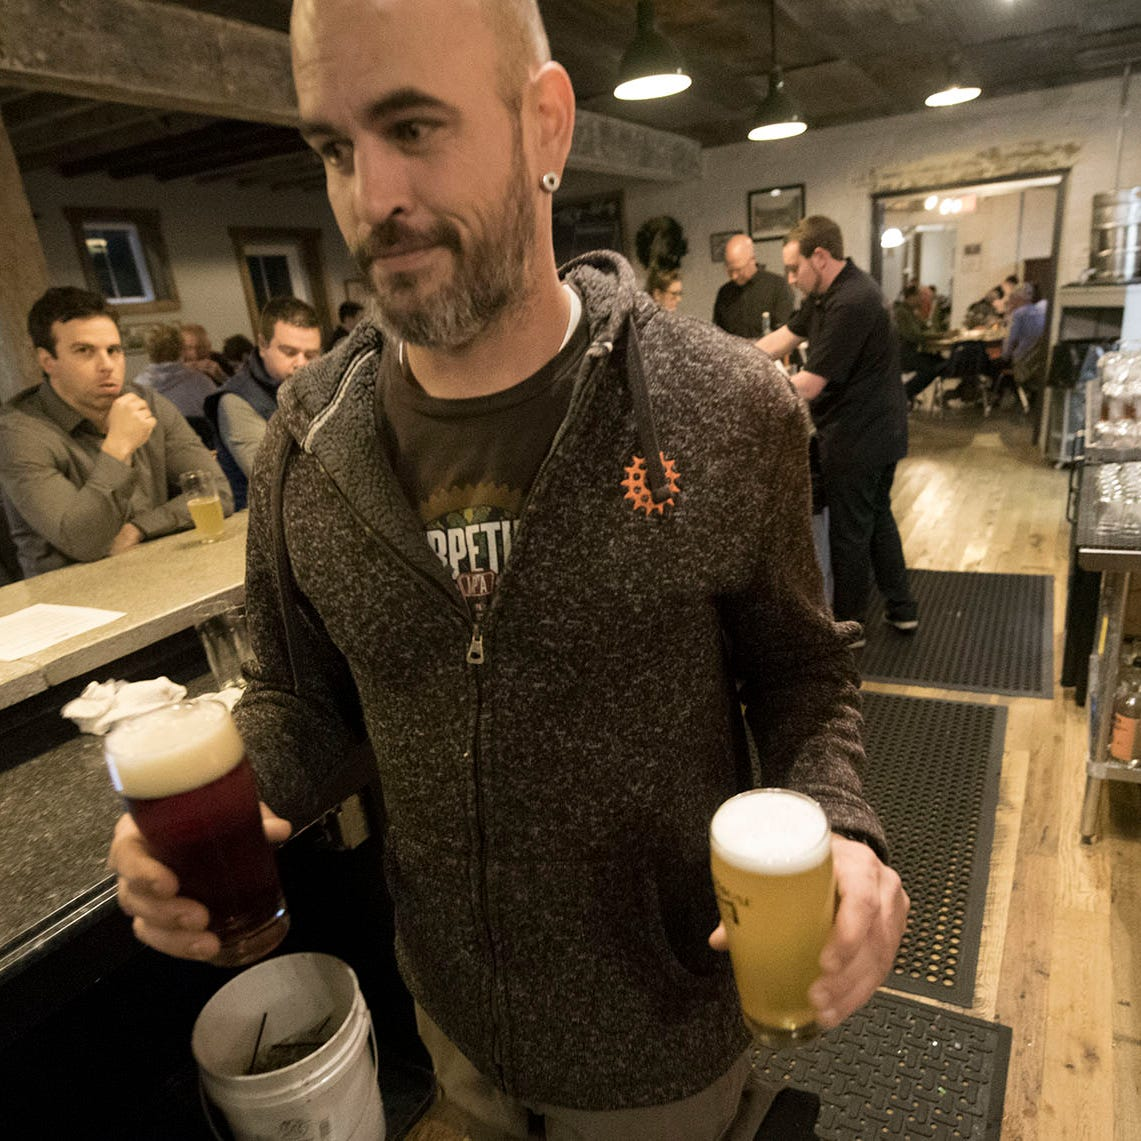 That pint of craft beer could cost more next year